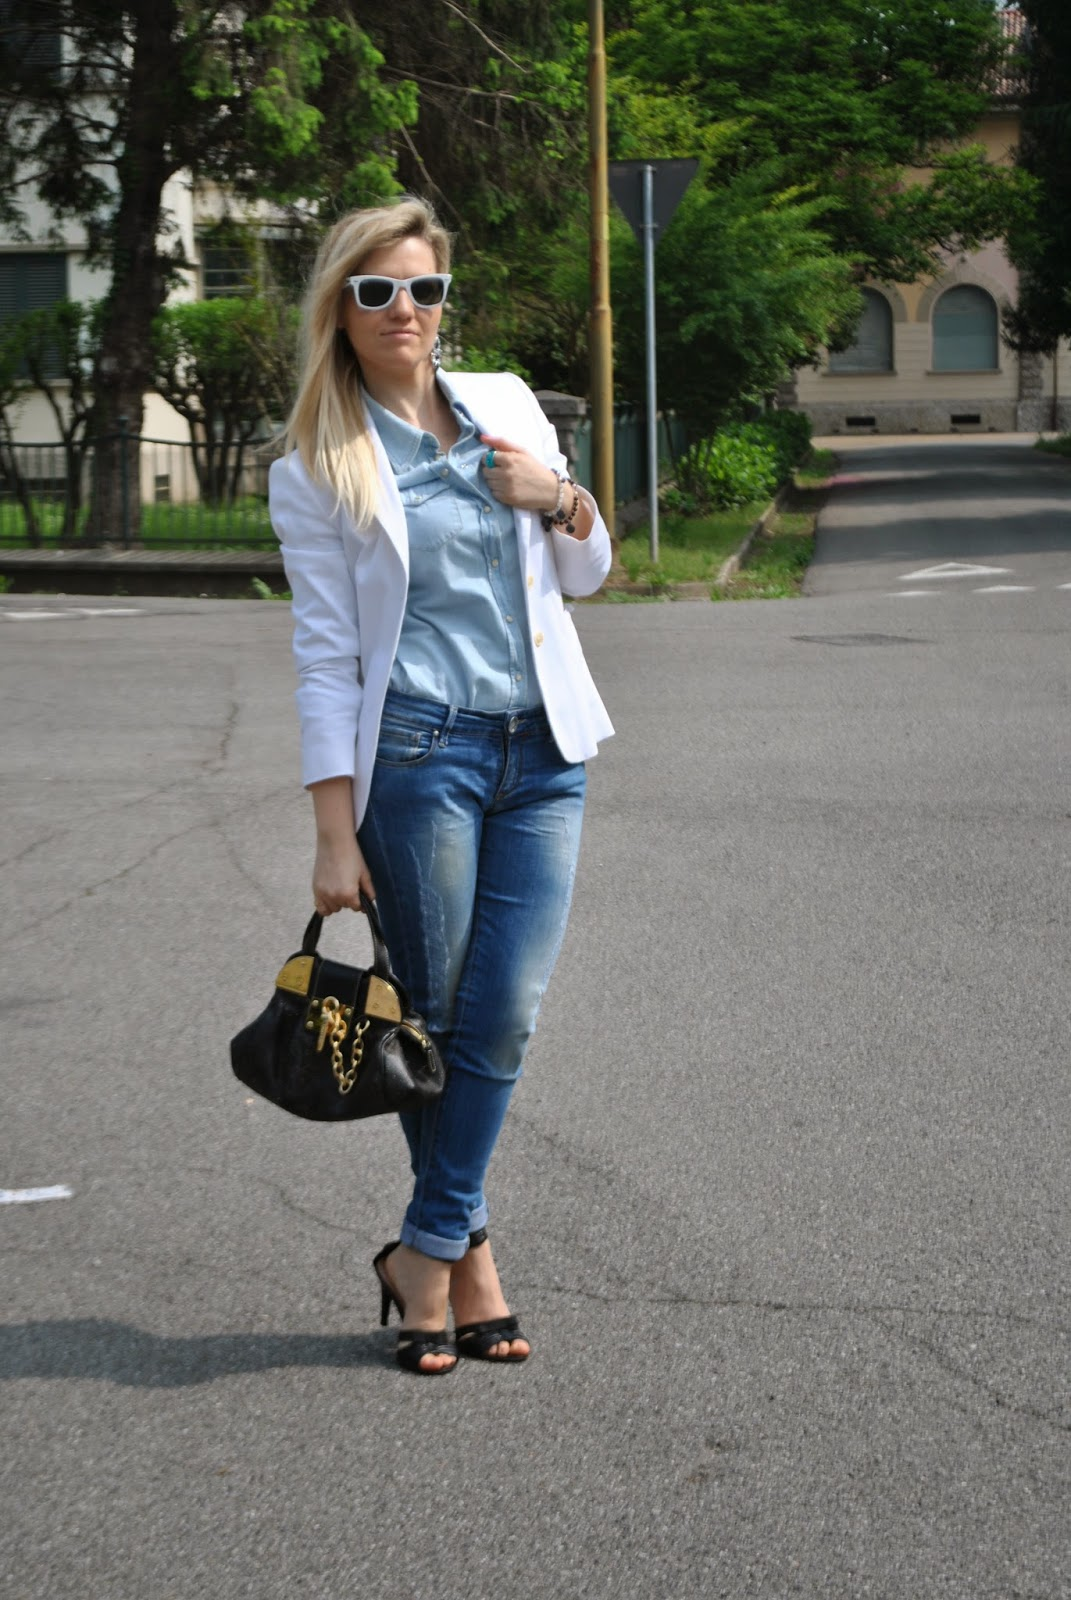 denim total look outfit camicia in denim outfit camicia jeans come abbinare la camicia in jeans come abbinare la camicia in denim abbinamenti camicia jeans abbinamenti camicia denim mariafelicia magno colorblock by felym mariafelicia magno fashion blogger milano blogger di moda italiane fashion blog italiani milano